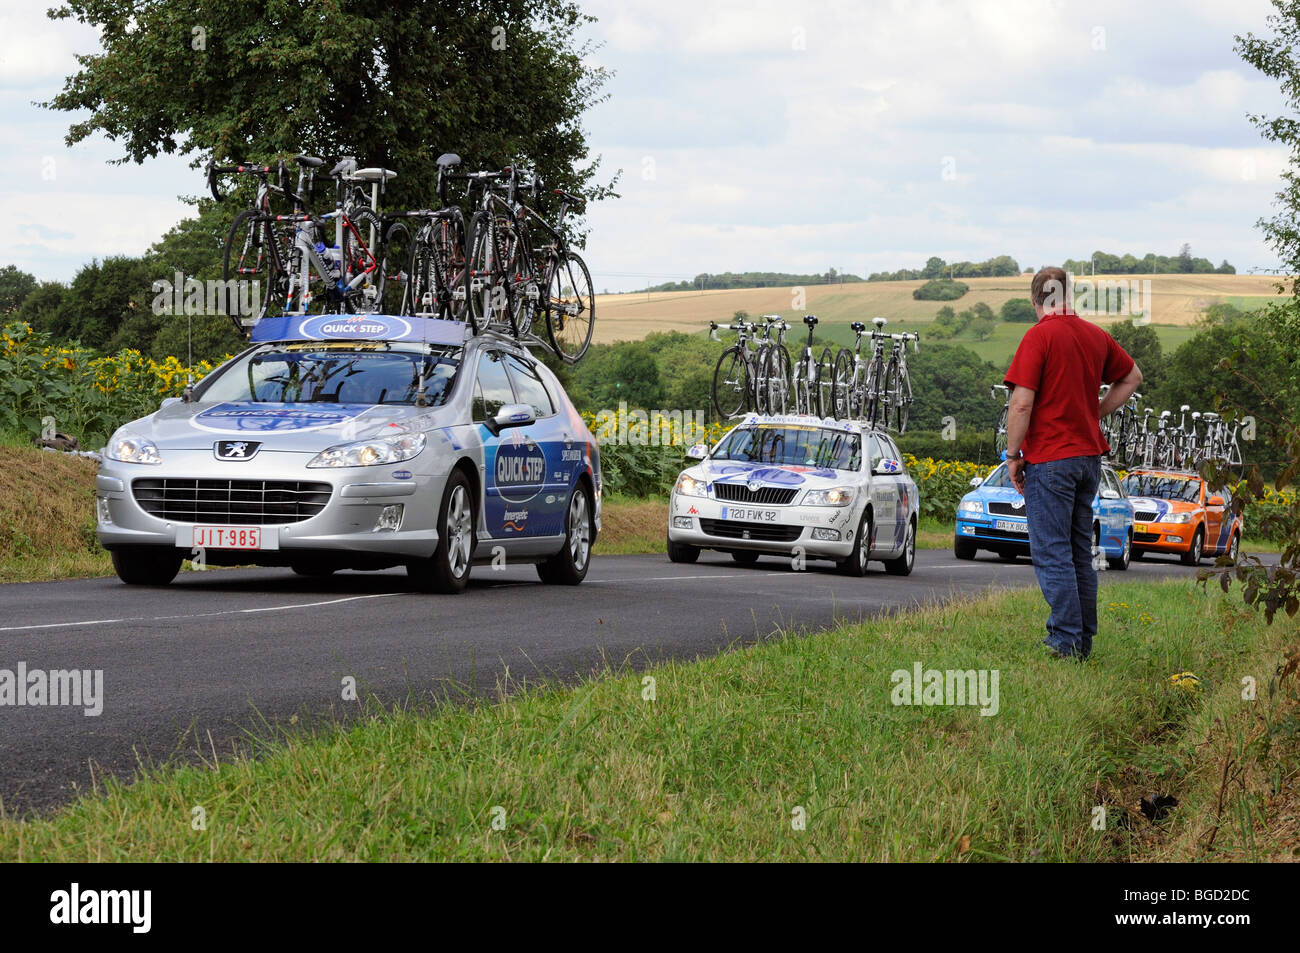 Quick Step and Francaise des Jeux team car on a stage of the 2009 Tour de France near Ratilly in the Yonne (89) - Stock Image